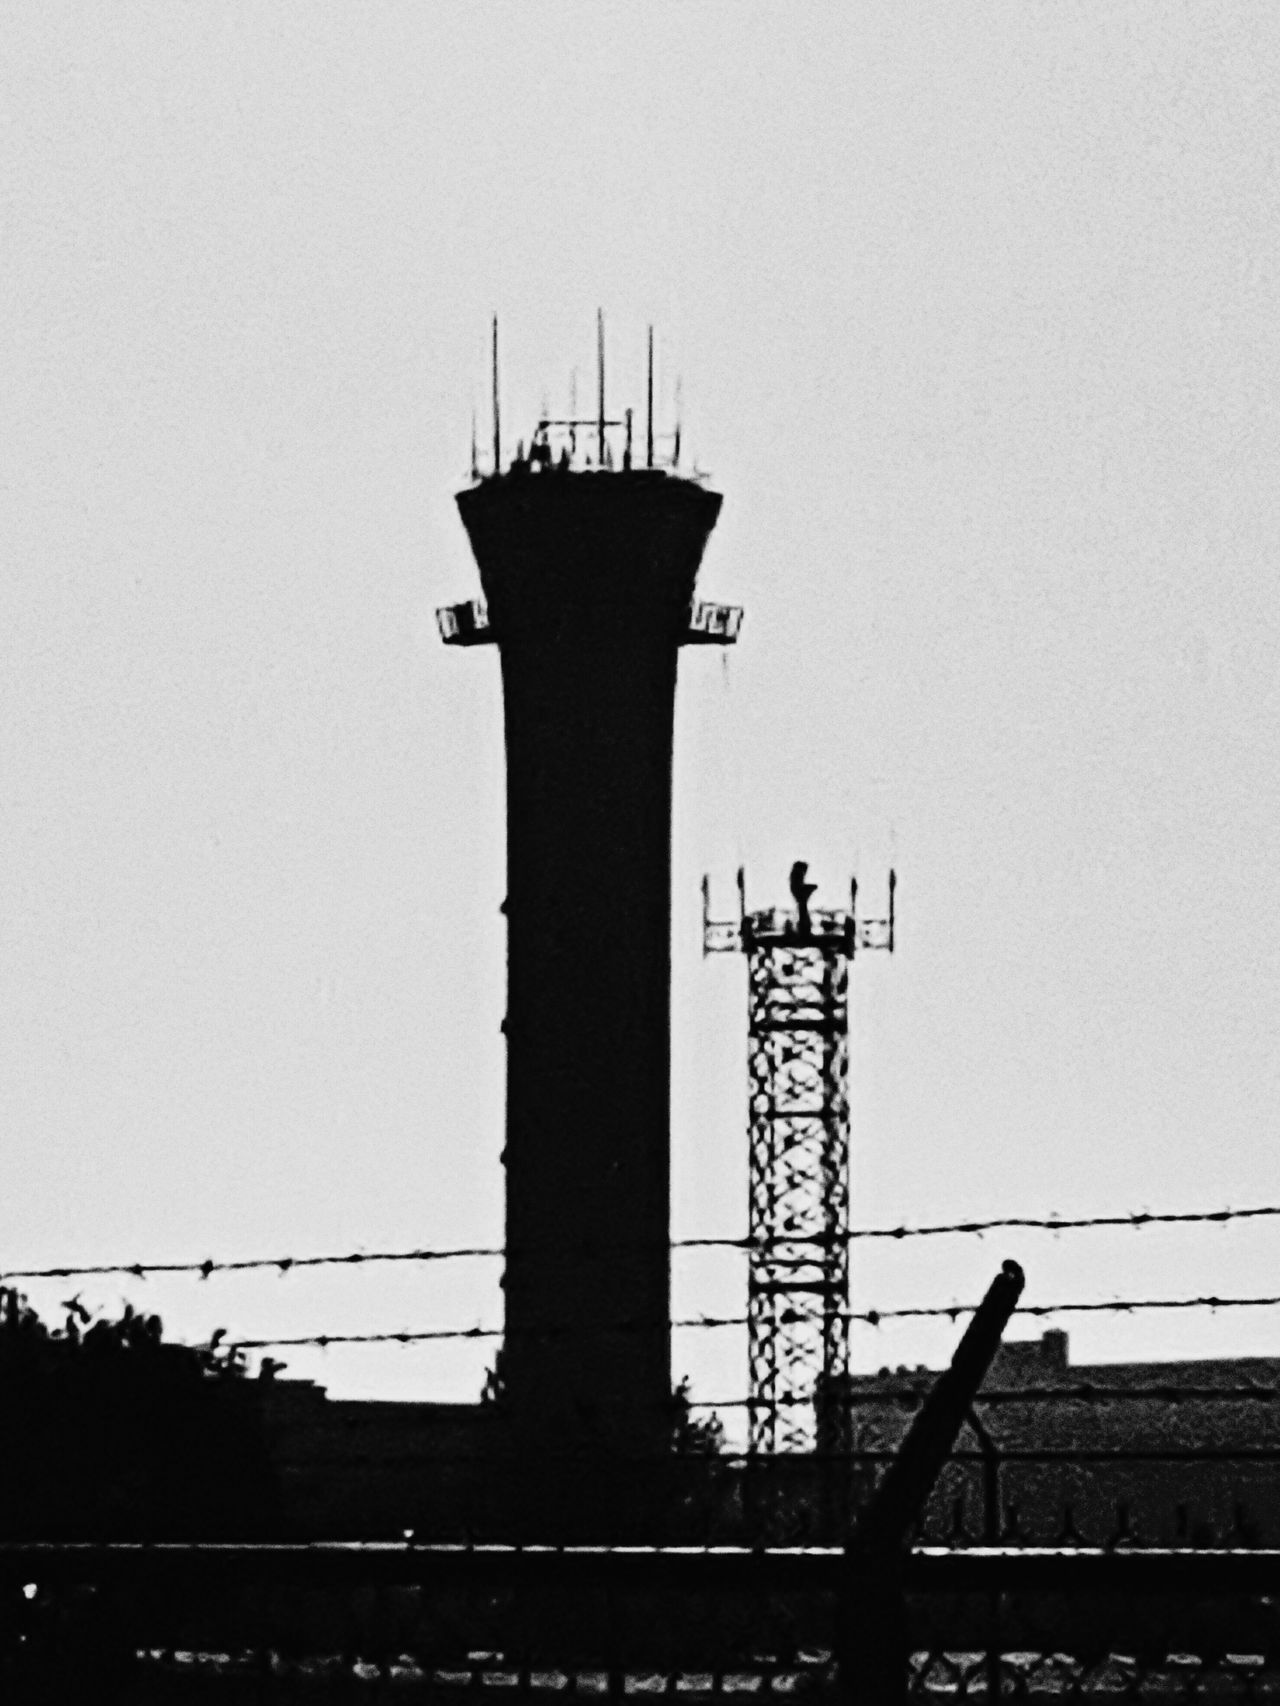 Control Tower Silhouette Silhouettes Silhoutte Photography Black And White Blackandwhite Black And White Photography Airports Transportation Airportphotography Outdoor Photography Creative Eye4photography  Still Life Photography Eyeem Market EyeEm Fresh On Eyeem  ForTheLoveOfPhotography Eyeemphotography My Perspective IShootFromMyWheelchair Fine Art Outdoors Urban Exploration Abstract City Life Still Life